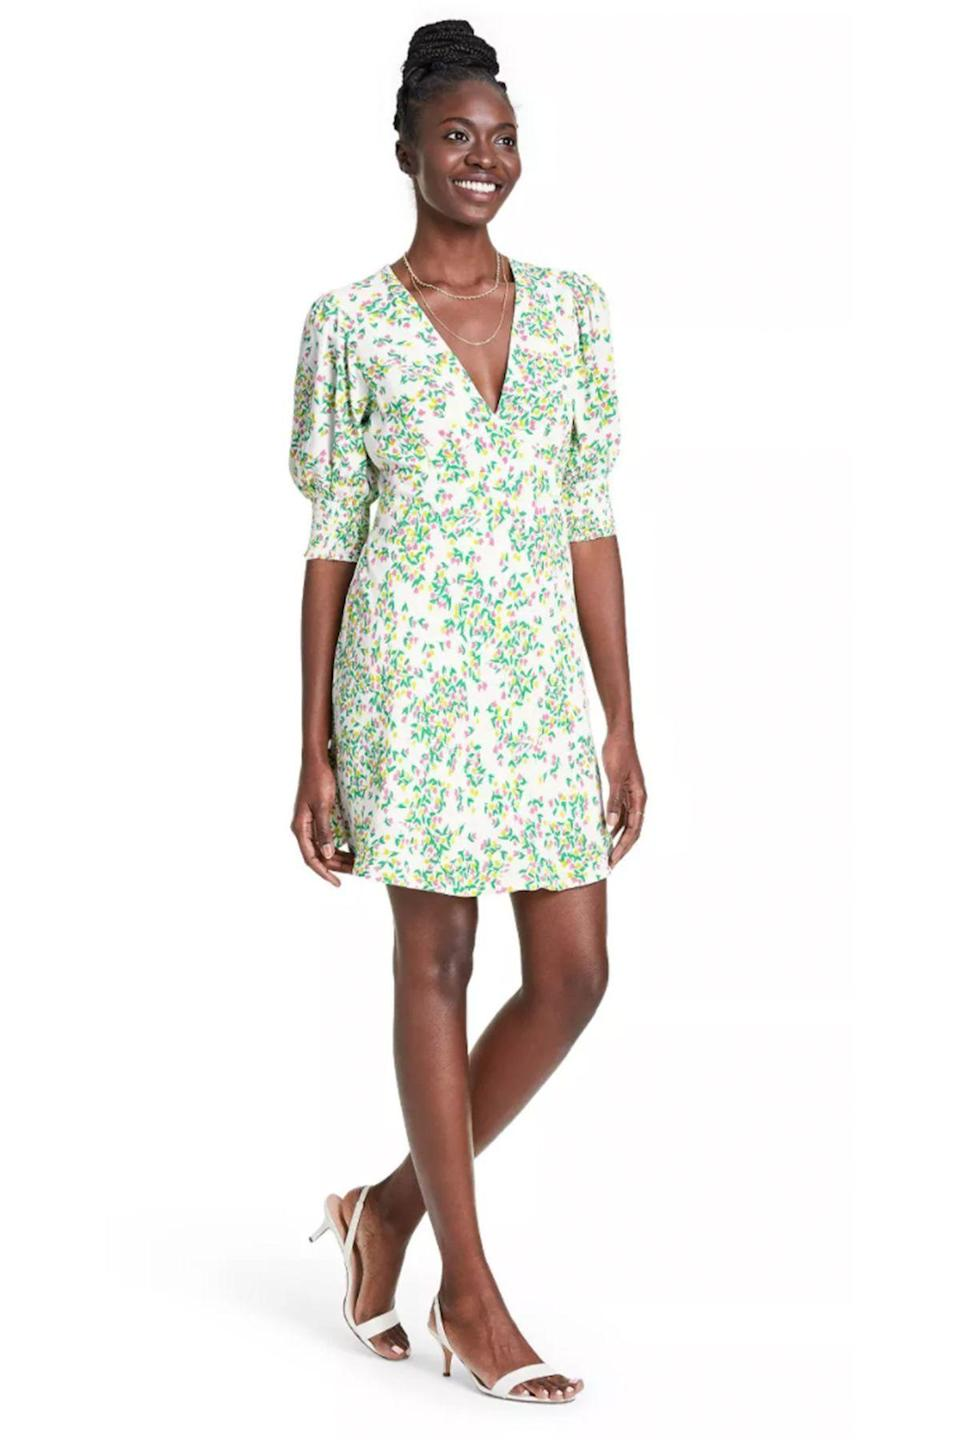 """<p><strong>RIXO for Target</strong></p><p>target.com</p><p><strong>$45.00</strong></p><p><a href=""""https://www.target.com/p/floral-puff-sleeve-swing-dress-rixo-for-target-cream-green/-/A-82020568"""" rel=""""nofollow noopener"""" target=""""_blank"""" data-ylk=""""slk:Shop Now"""" class=""""link rapid-noclick-resp"""">Shop Now</a></p>"""